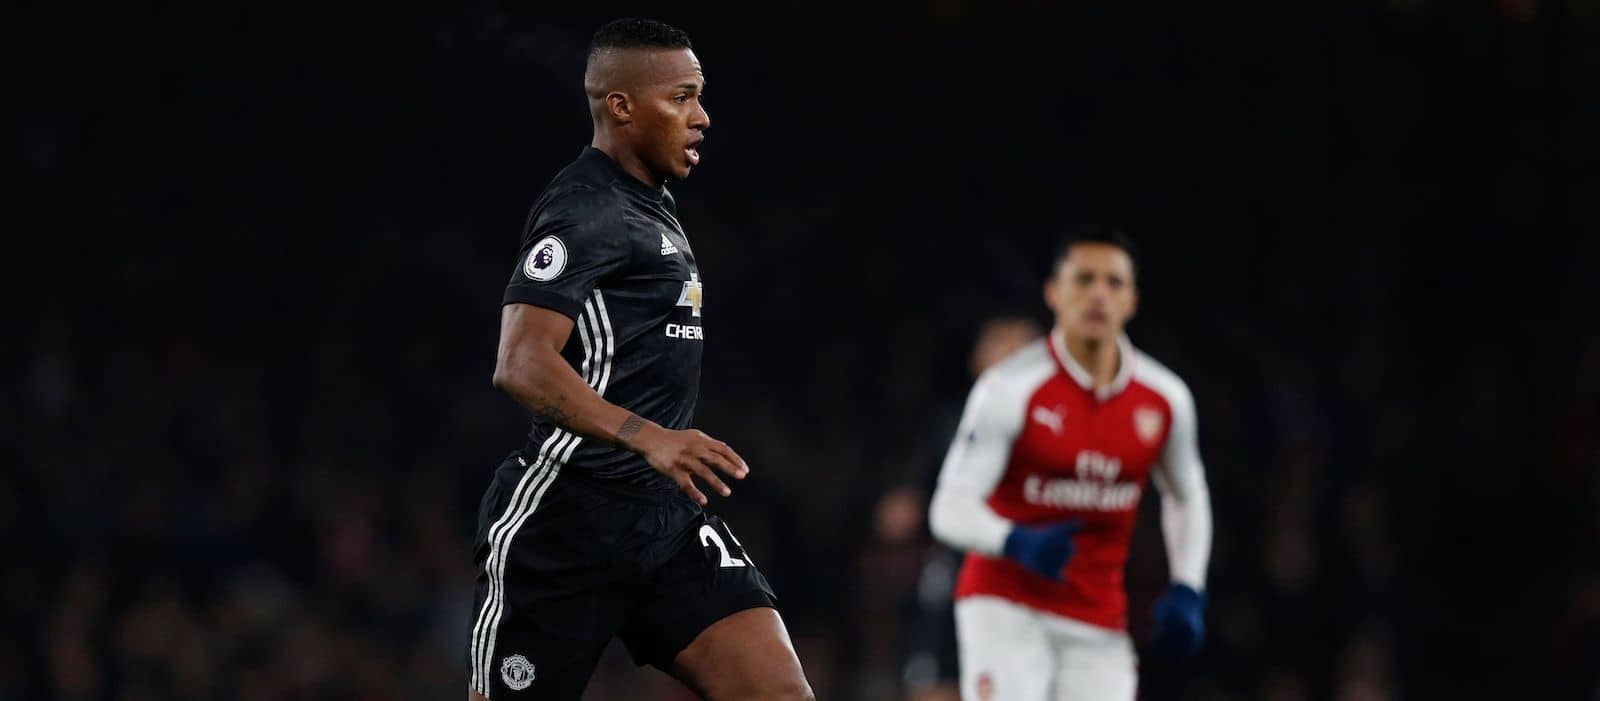 Ole Gunnar Solskjaer indicates Antonio Valencia will leave Manchester United this summer